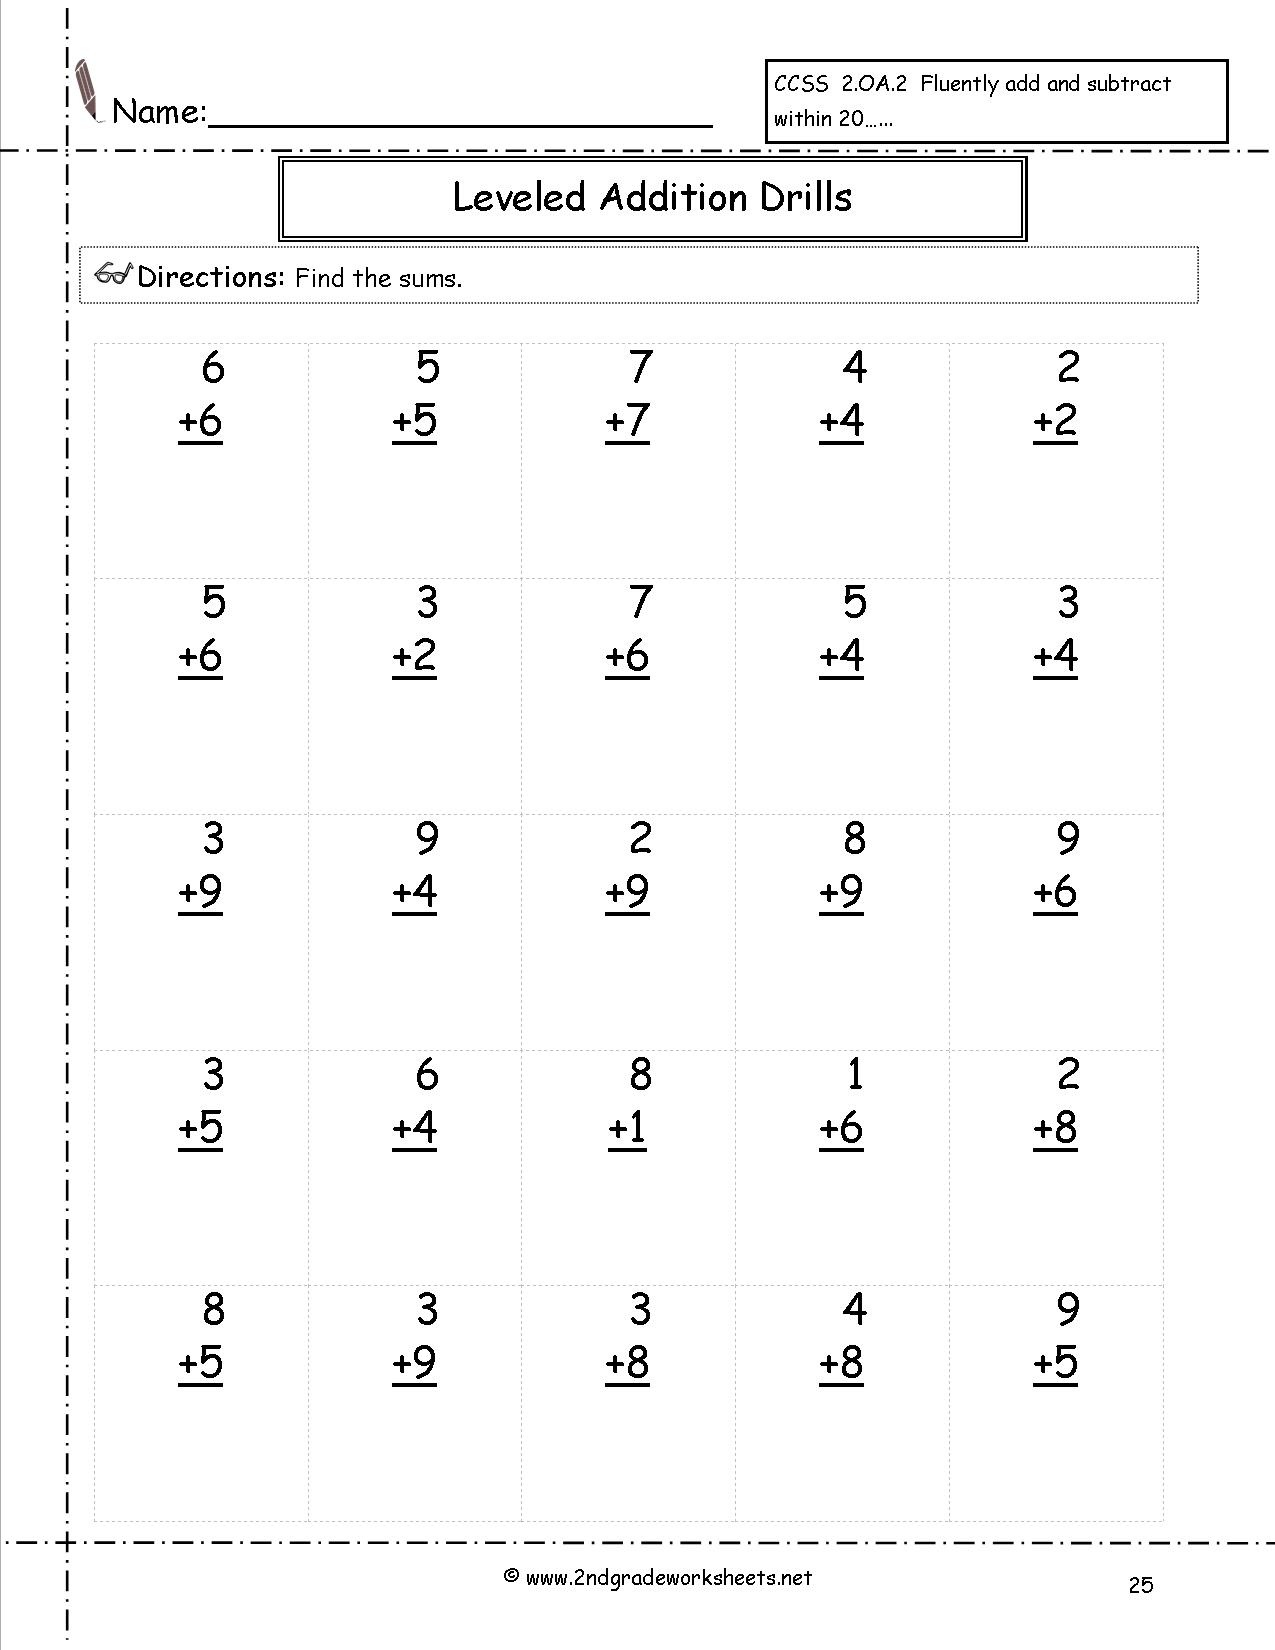 Free Math Worksheets And Printouts - Free Printable Worksheets For 2Nd Grade